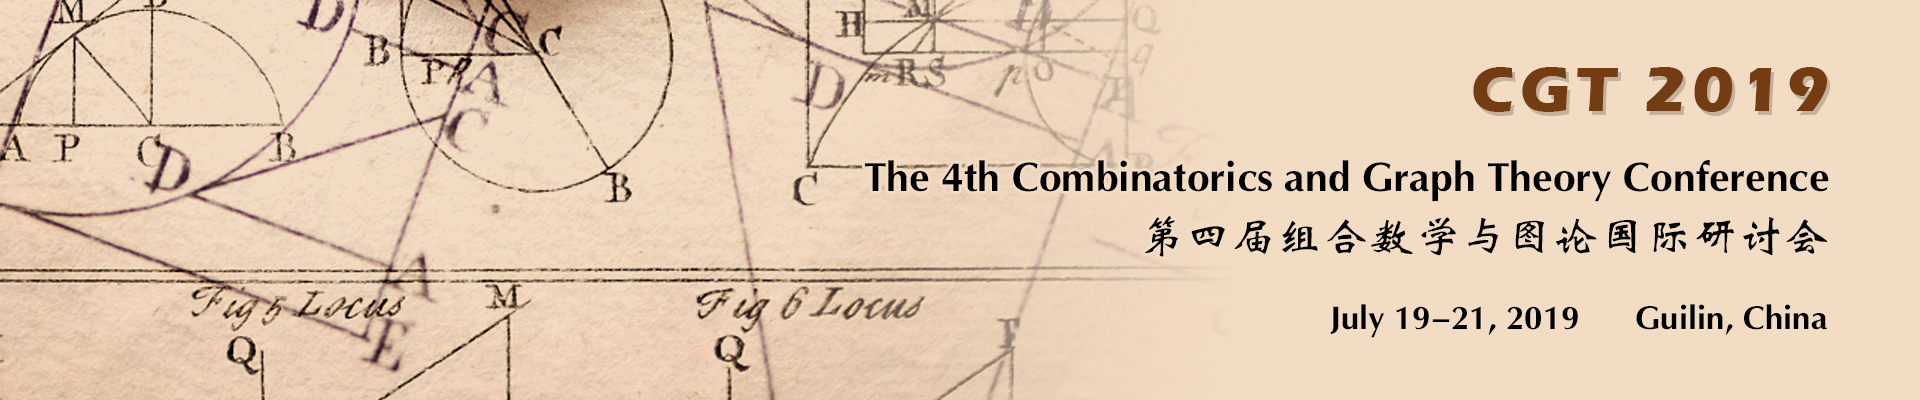 The 4th Combinatorics and Graph Theory Conference (CGT 2019), Guilin, Guangxi, China